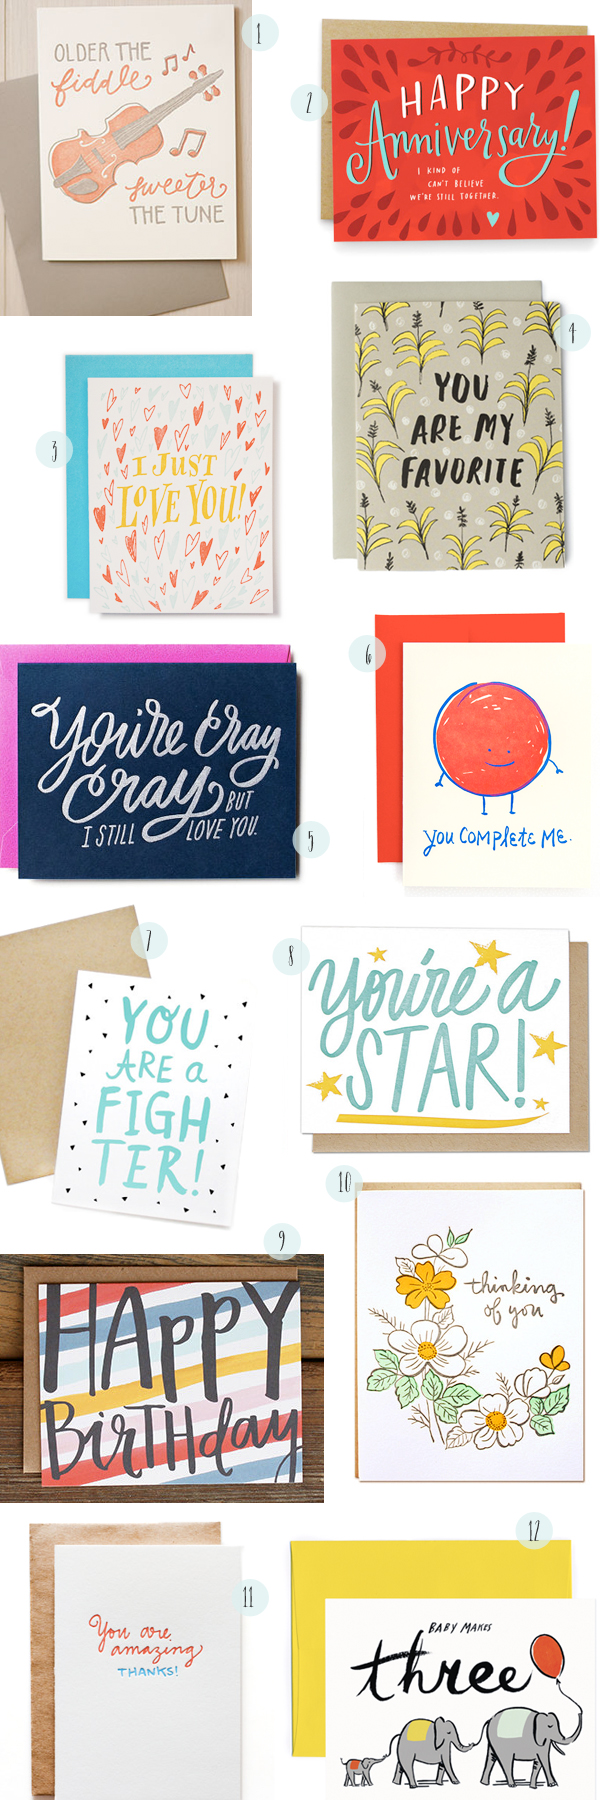 Stationery A Z Hand Lettered Greeting Cards OSBP Stationery A Z: Hand Lettered Greeting Cards